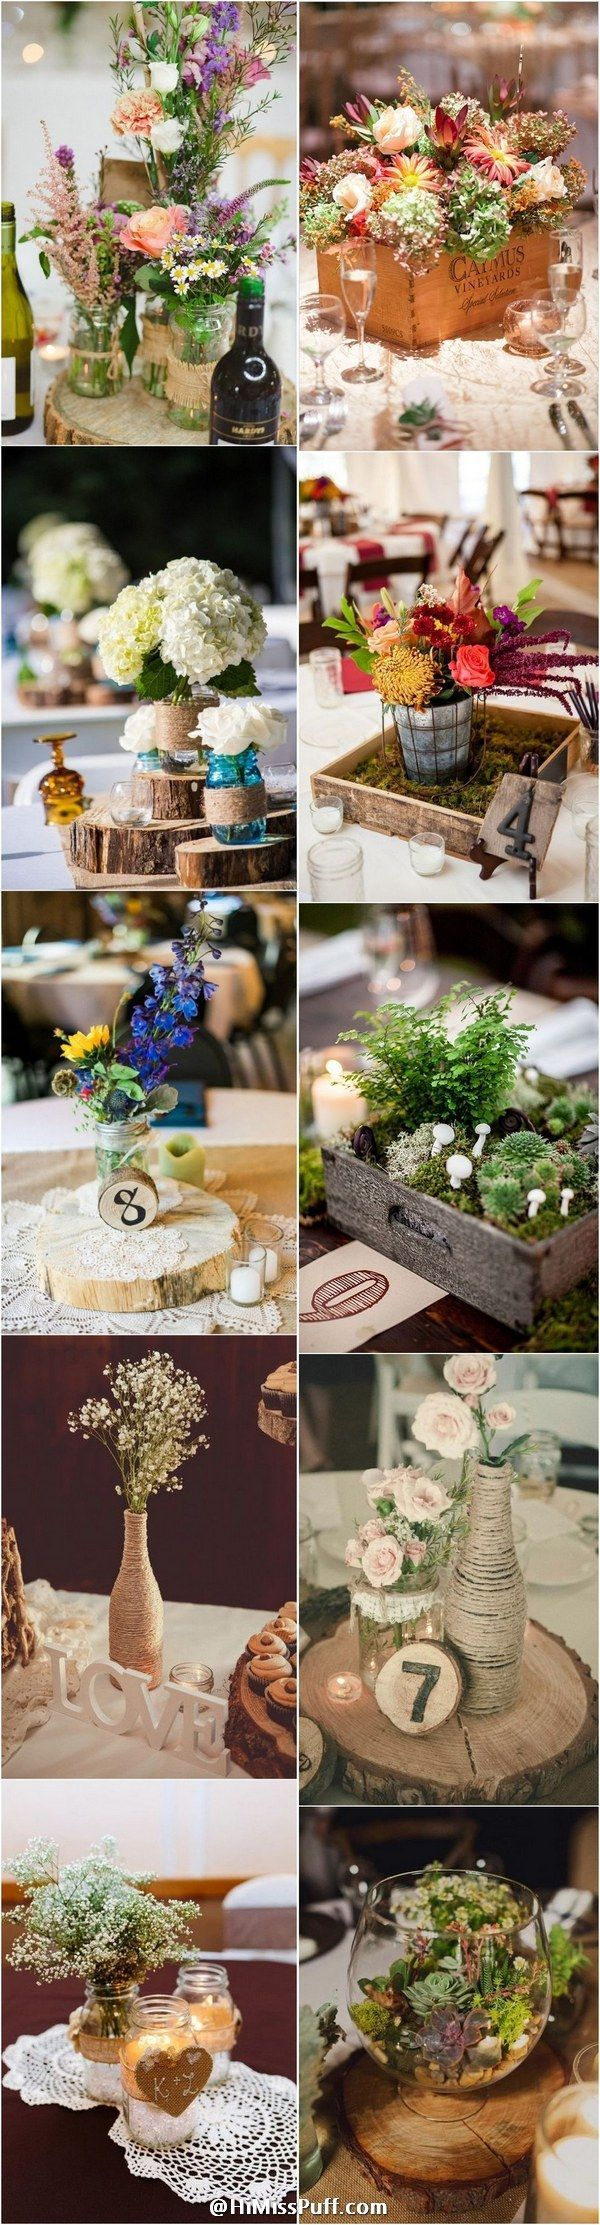 100 country rustic wedding centerpiece ideas country wedding 100 country rustic wedding centerpiece ideas country wedding centerpieces rustic wedding centrepieces and rustic country weddings junglespirit Image collections